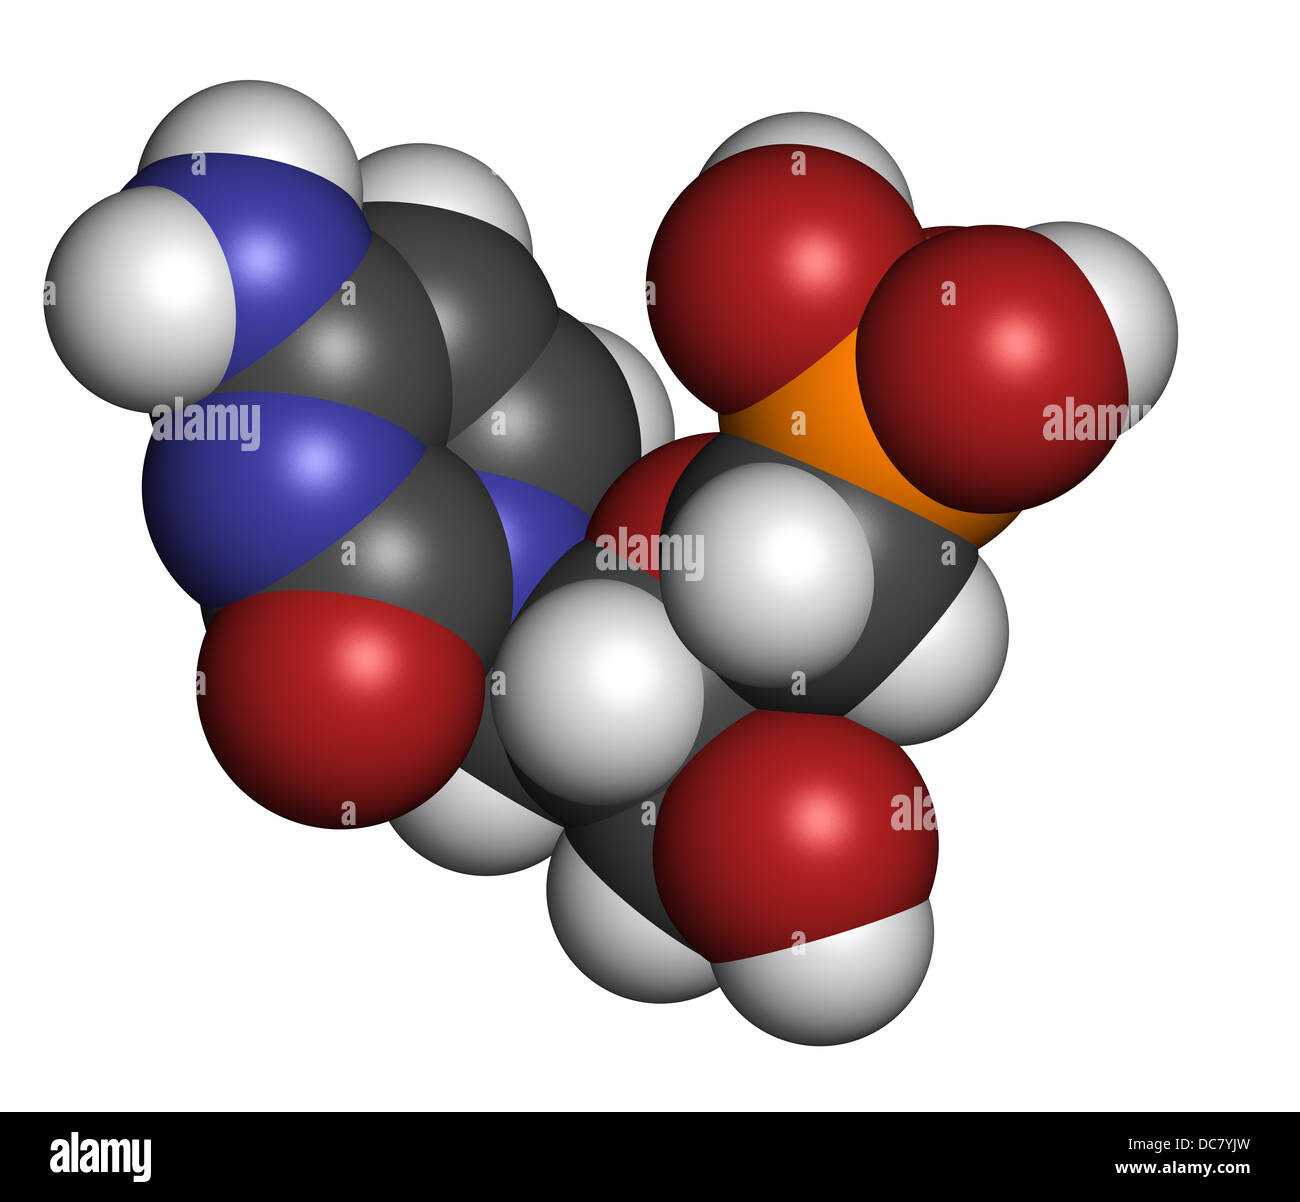 Cidofovir cytomegalovirus (CMV, HCMV) drug, chemical structure. Can probably also be used against smallpox infection. - Stock Image